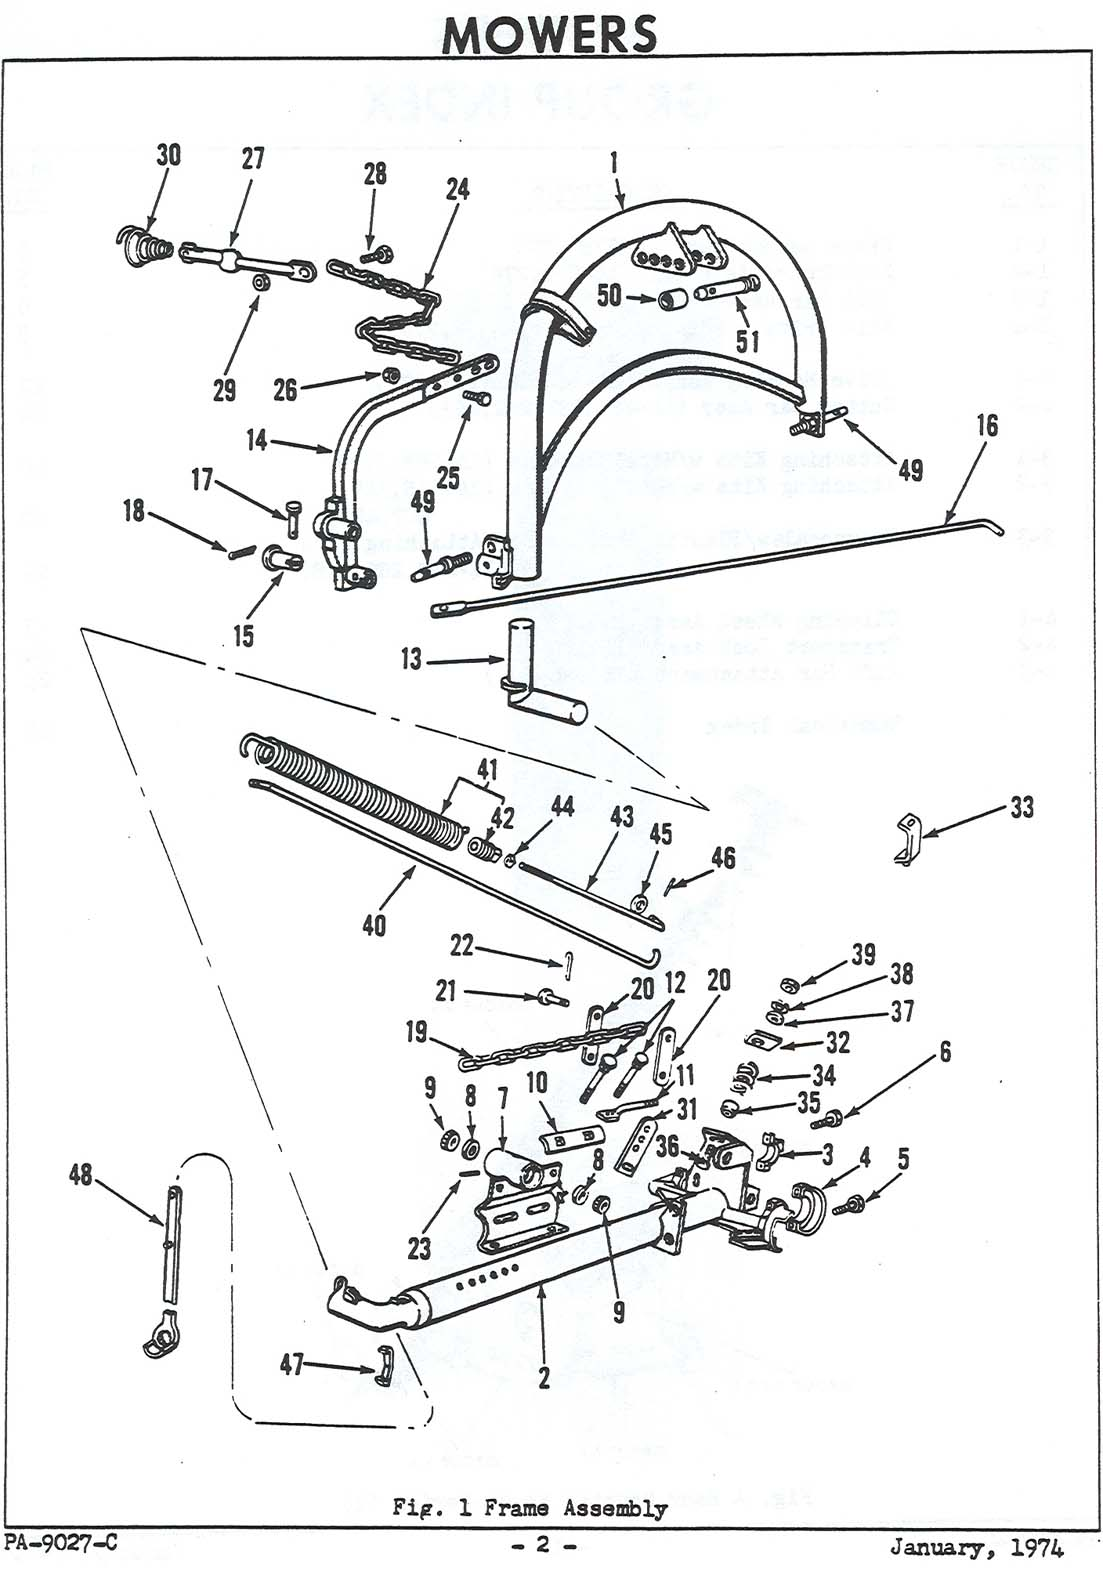 Ford Sickle Bar Mower Parts Pictures To Pin